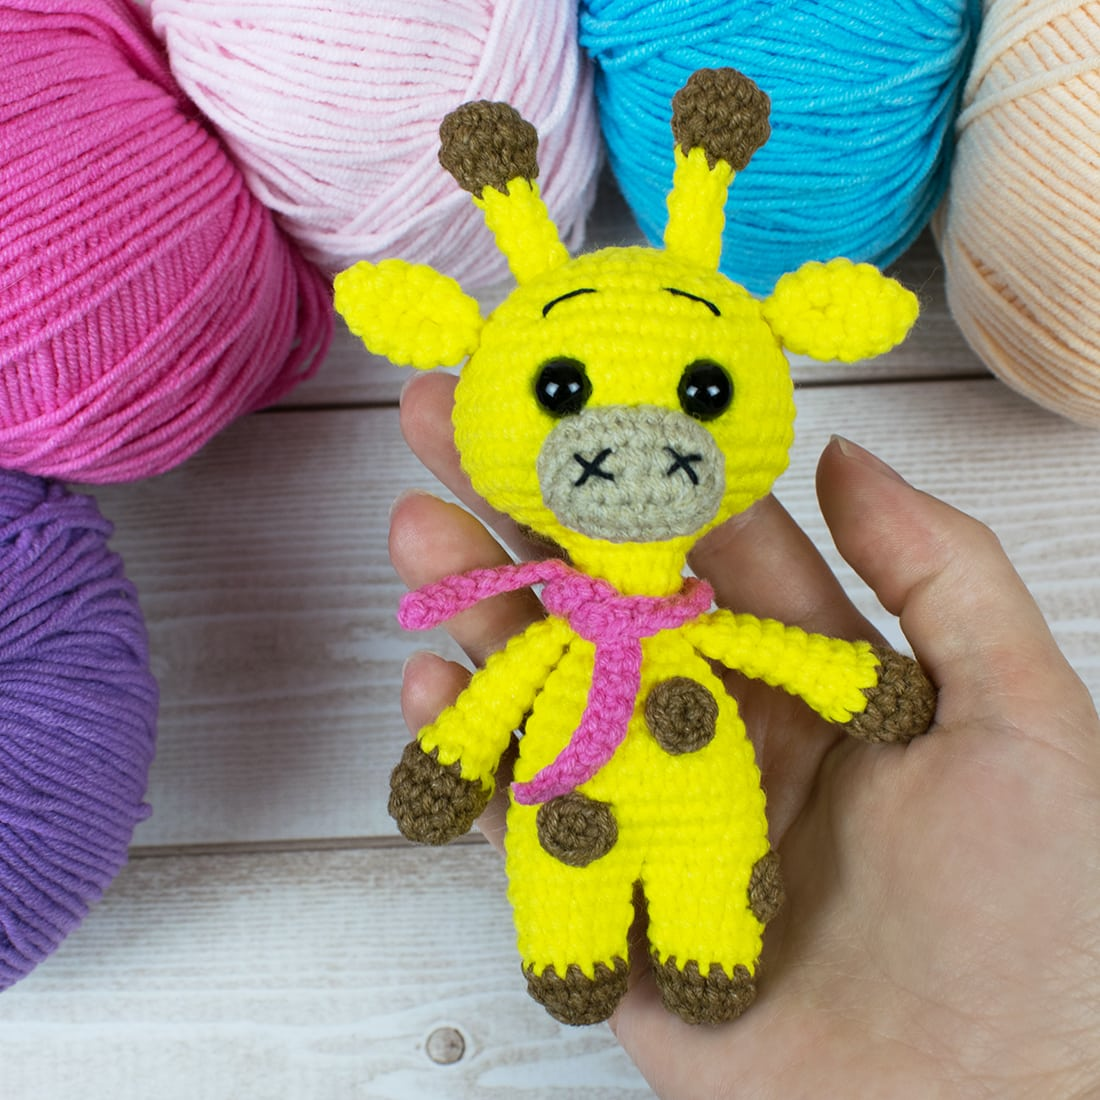 Cute Crochet Giraffe Amigurumi Free Pattern - DIY 4 EVER | 1100x1100